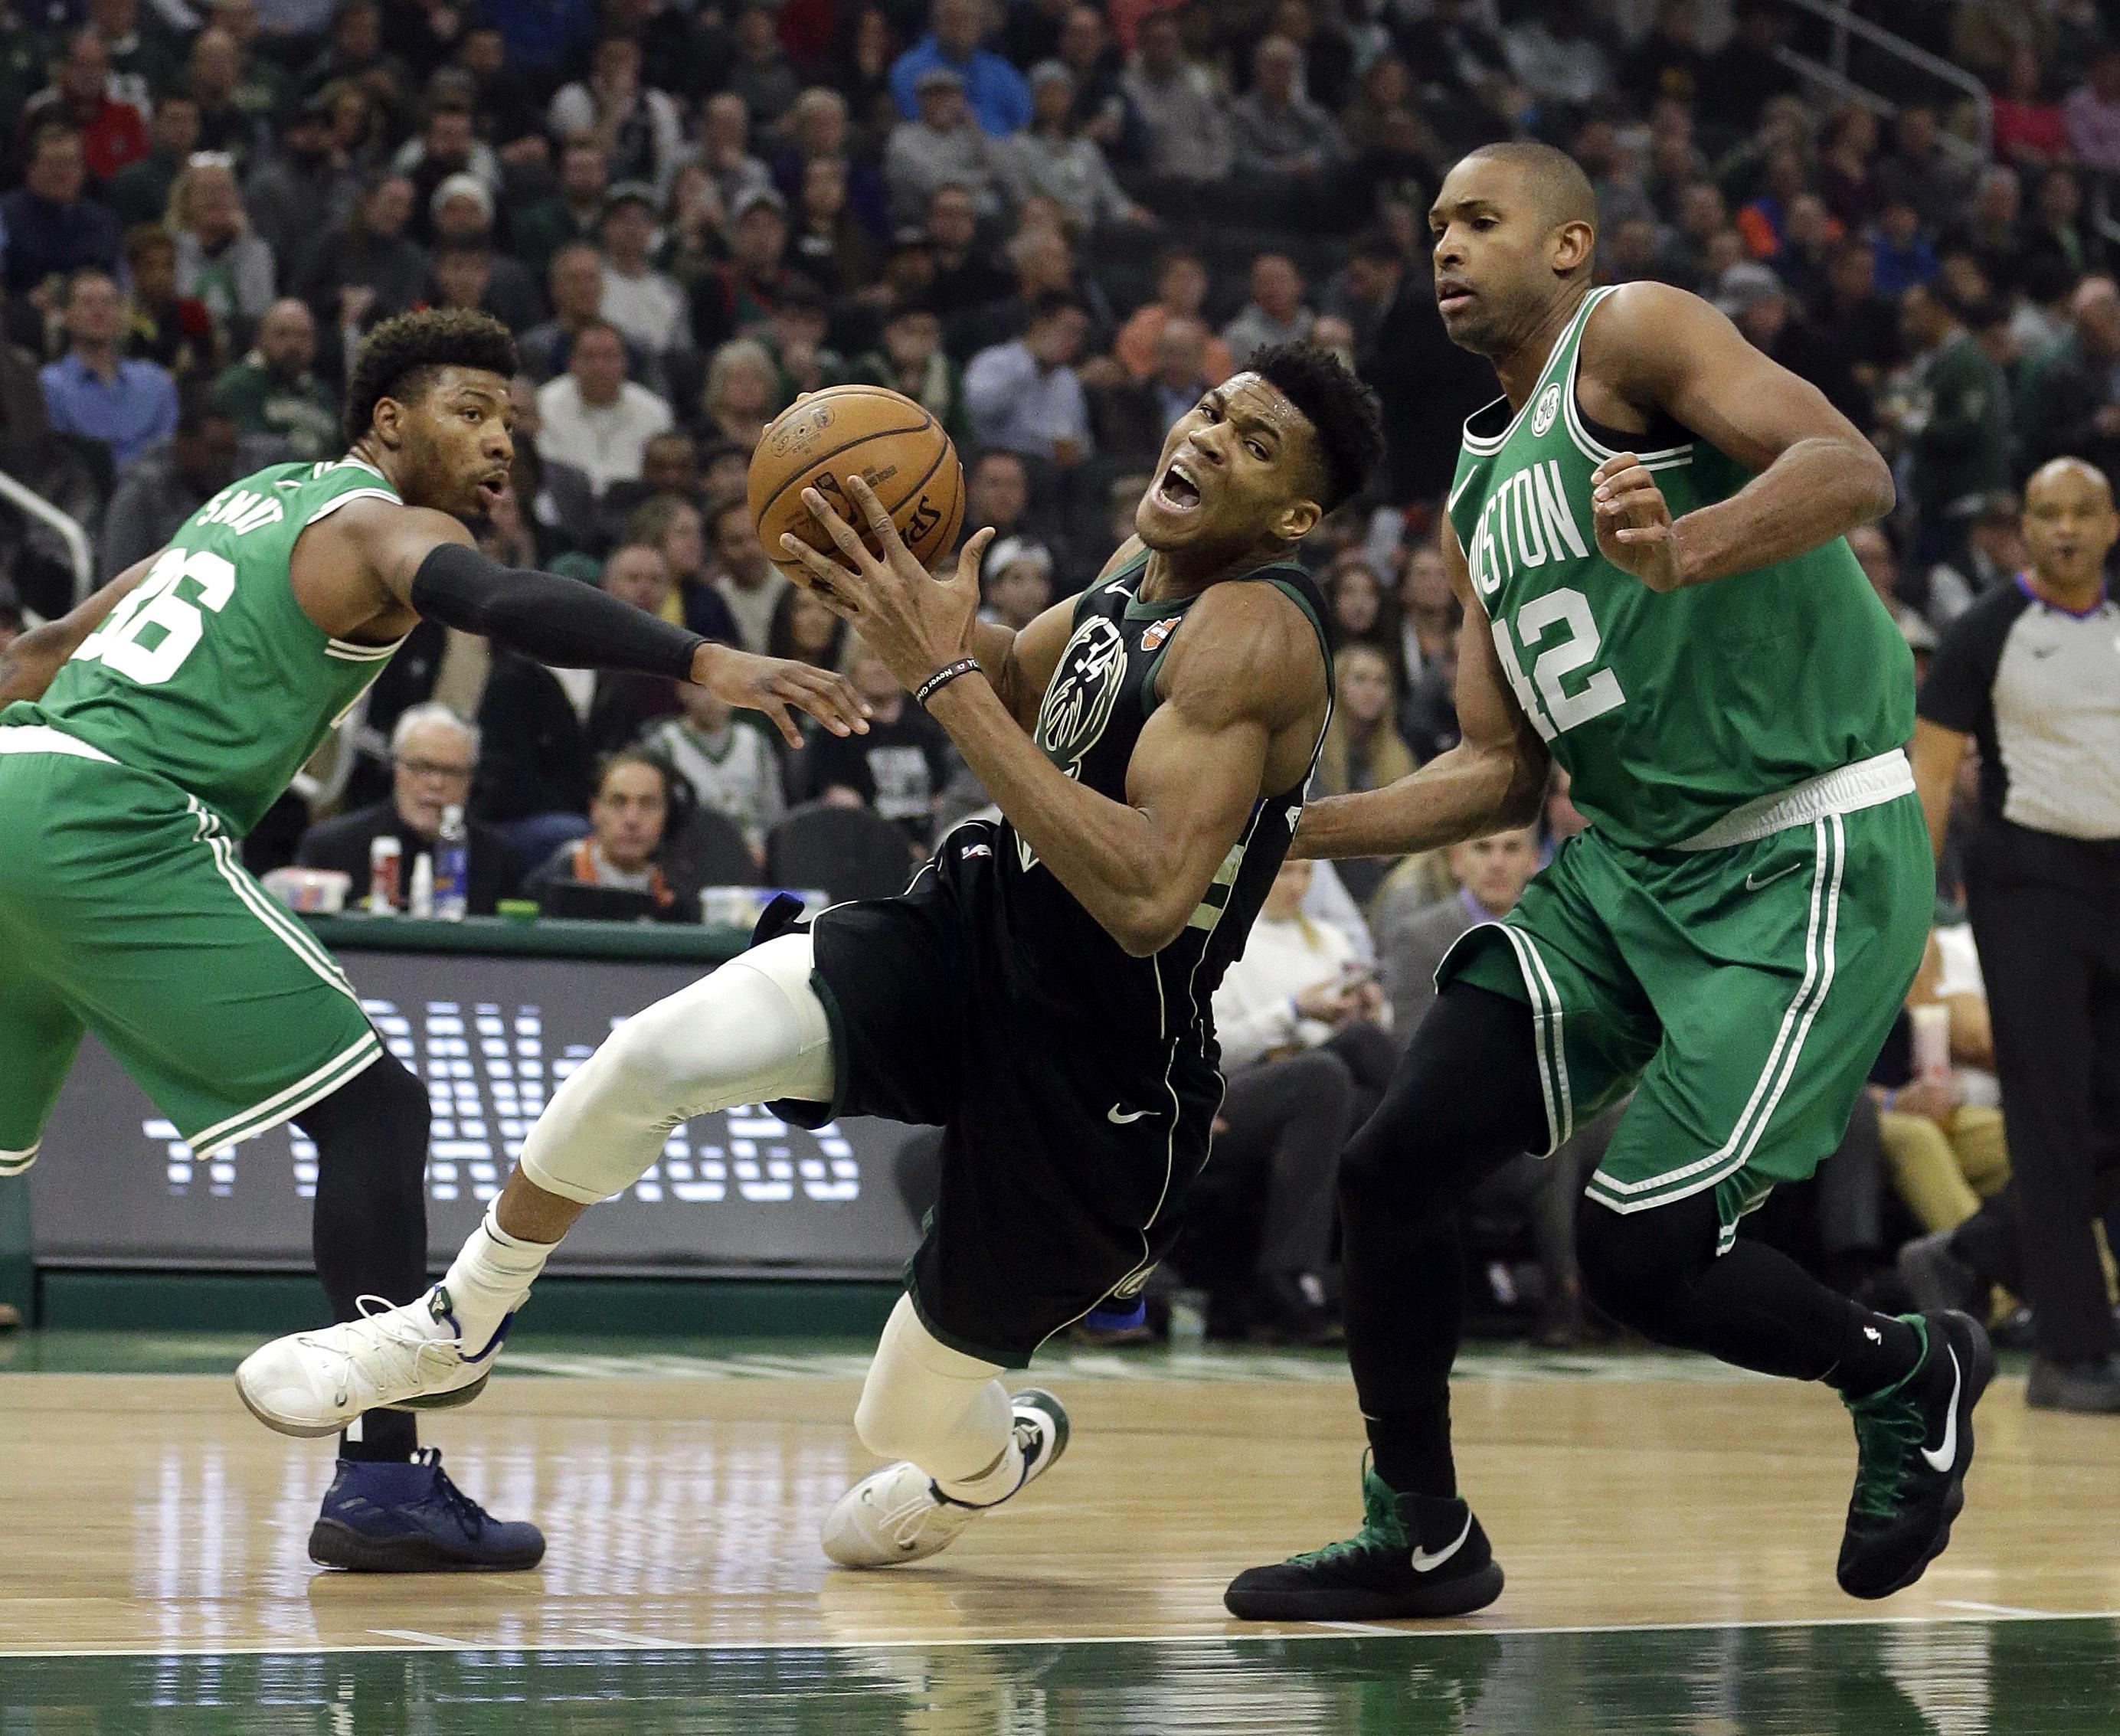 Bucks forward Giannis Antetokounmpo falls to the floor while defended by  Boston Celtics  Al Horford f3d9161d9